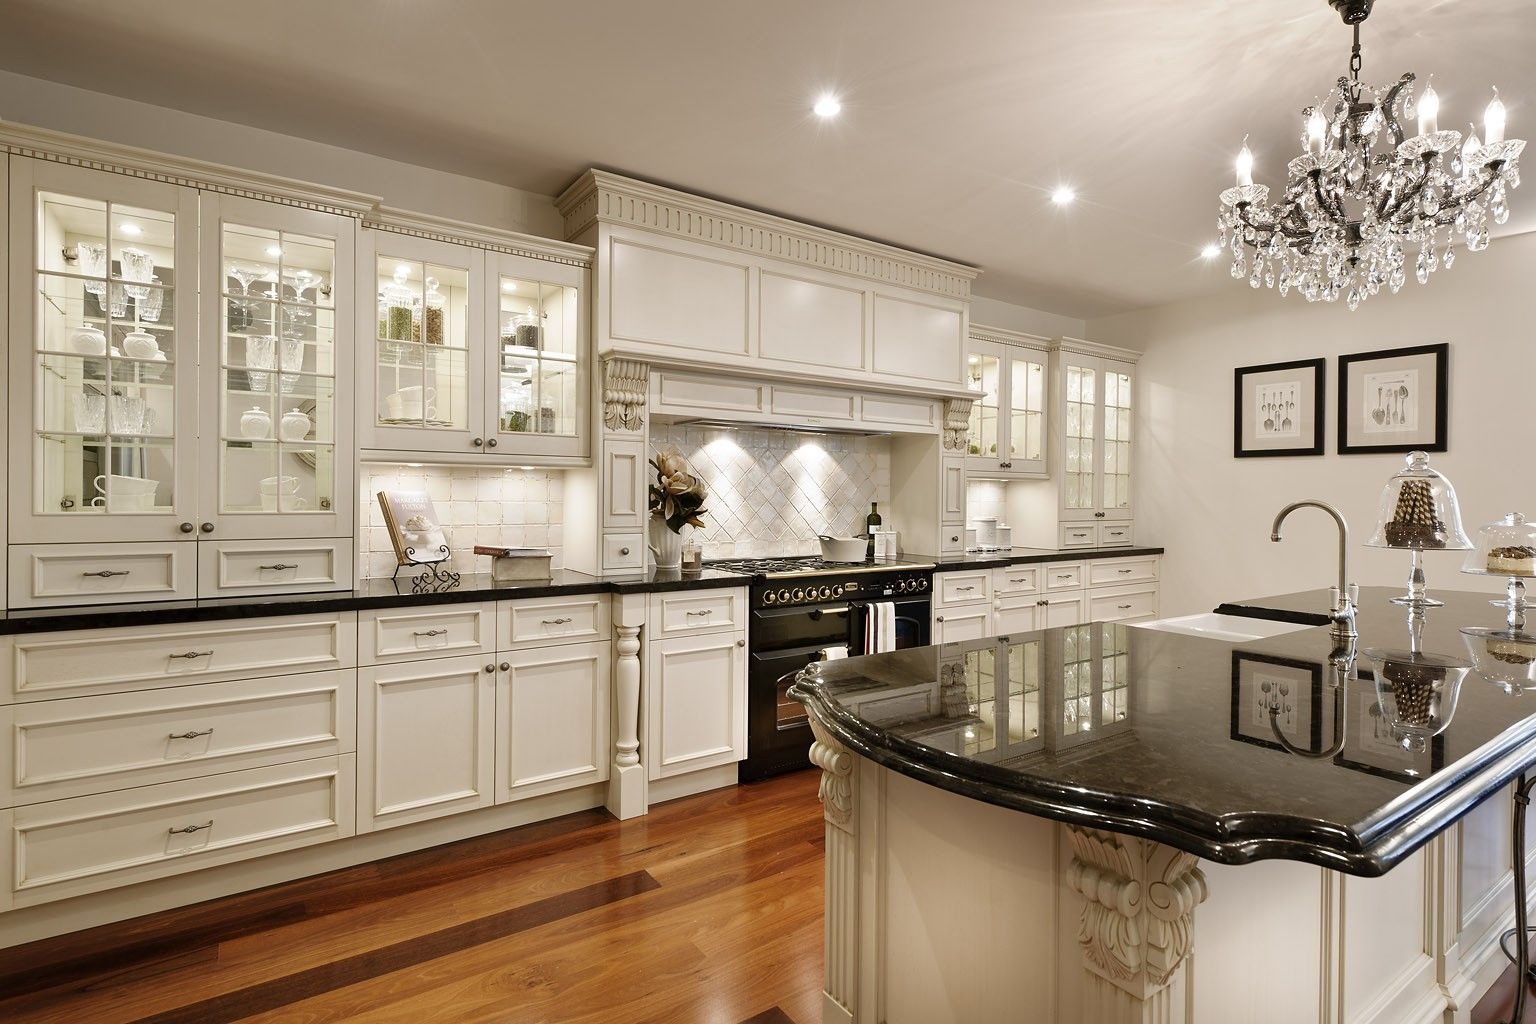 Farmhouse Sink Melbourne Fabulous Design Ideas Of French Provincial Kitchens With